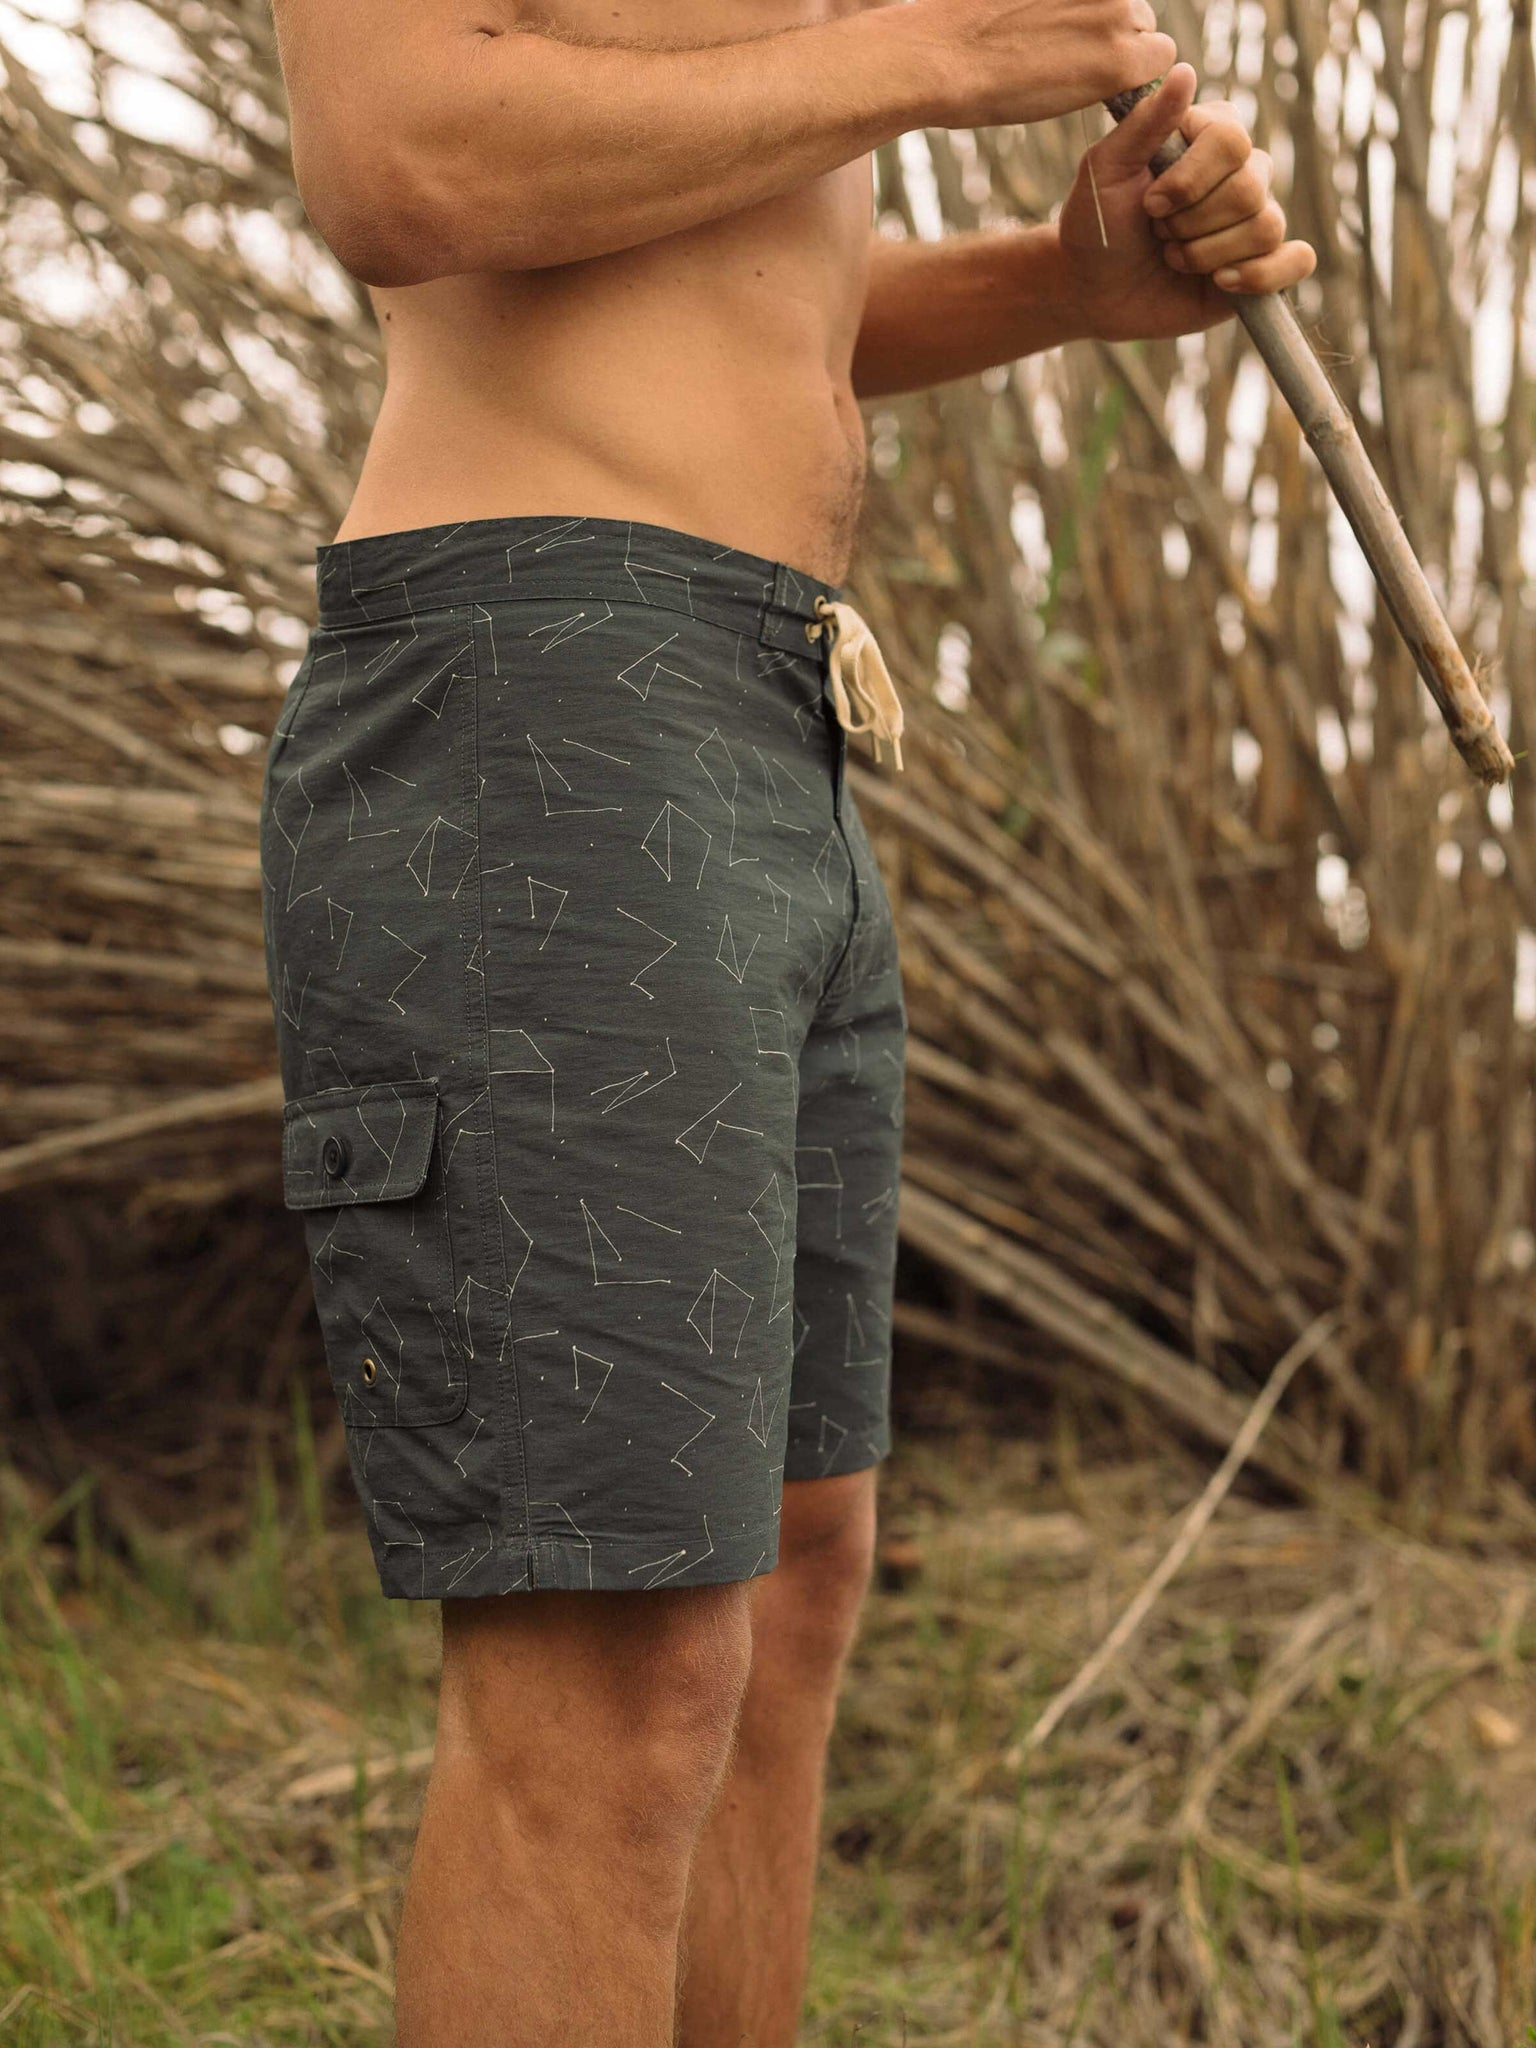 Notched Trunks